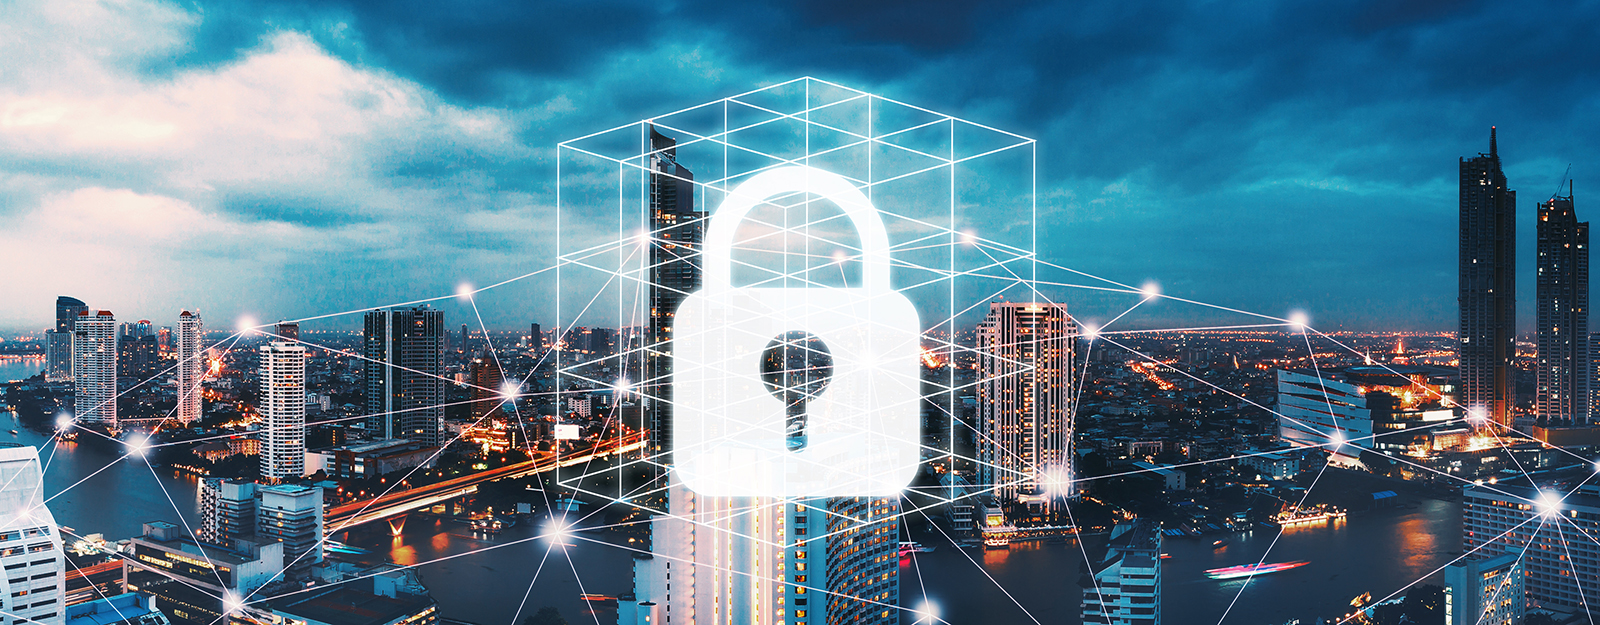 IoT Cybersecurity Improvement Act signed into law